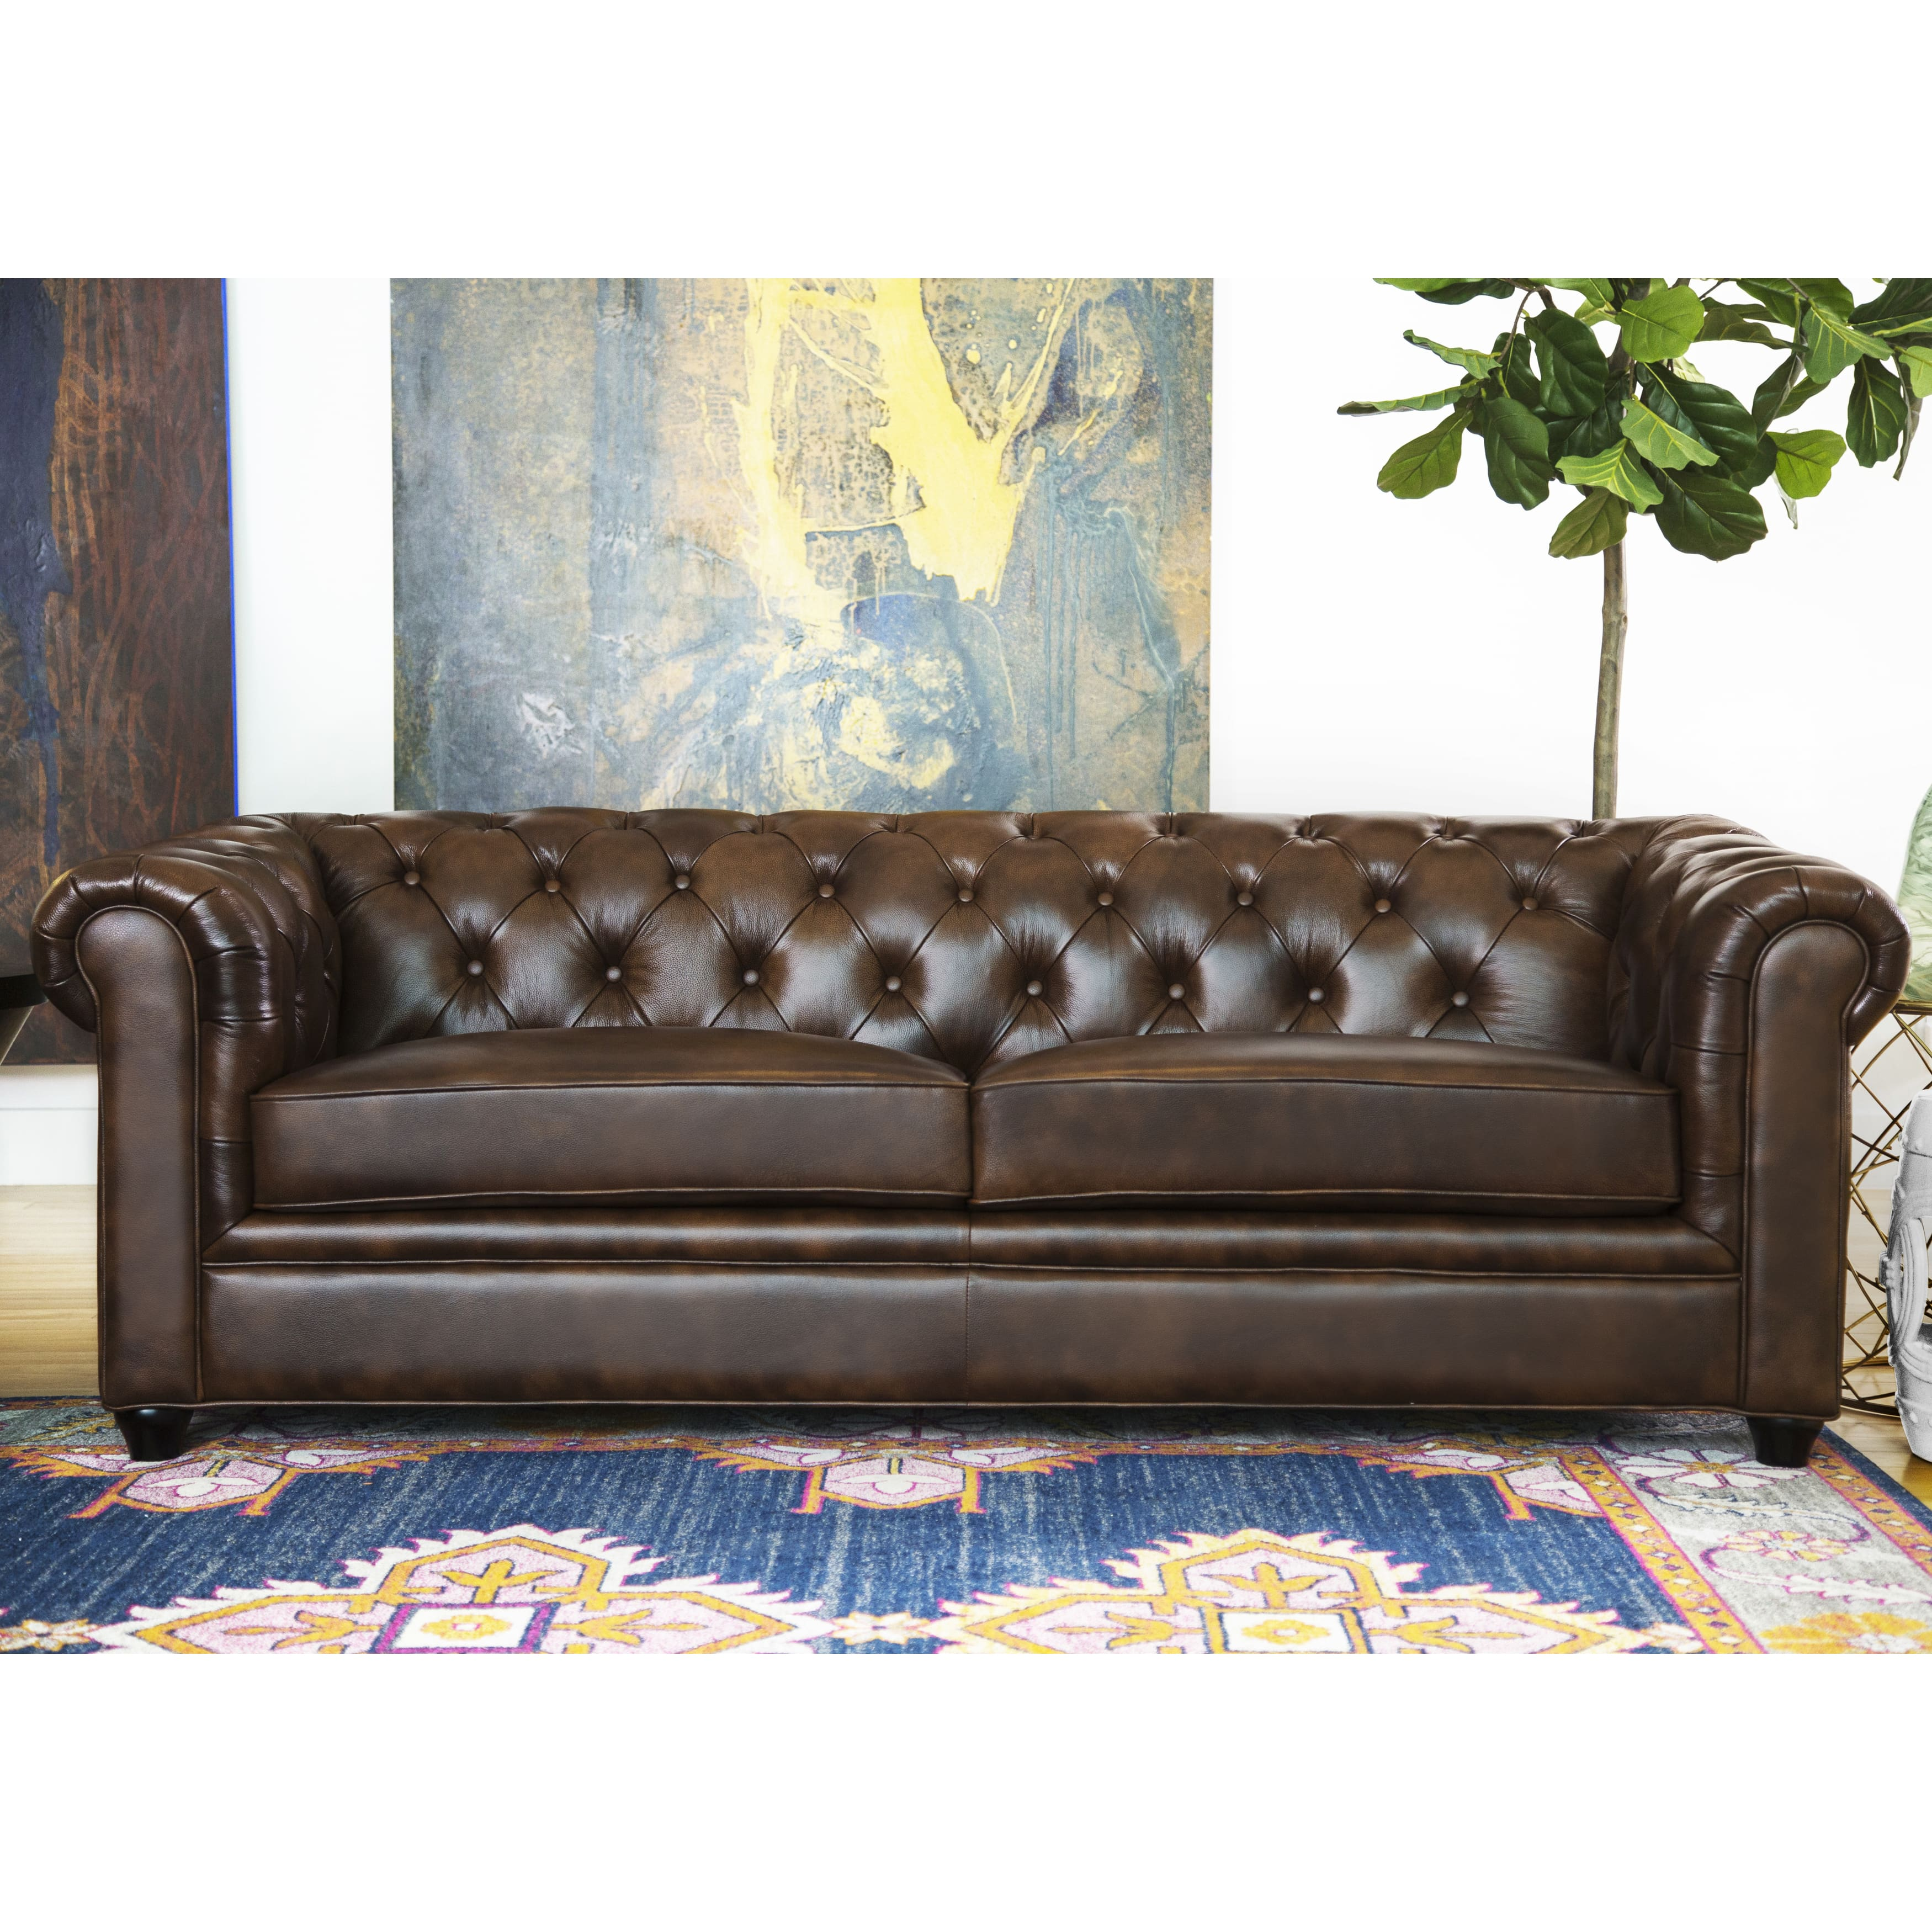 sofas couches loveseats for less. Black Bedroom Furniture Sets. Home Design Ideas